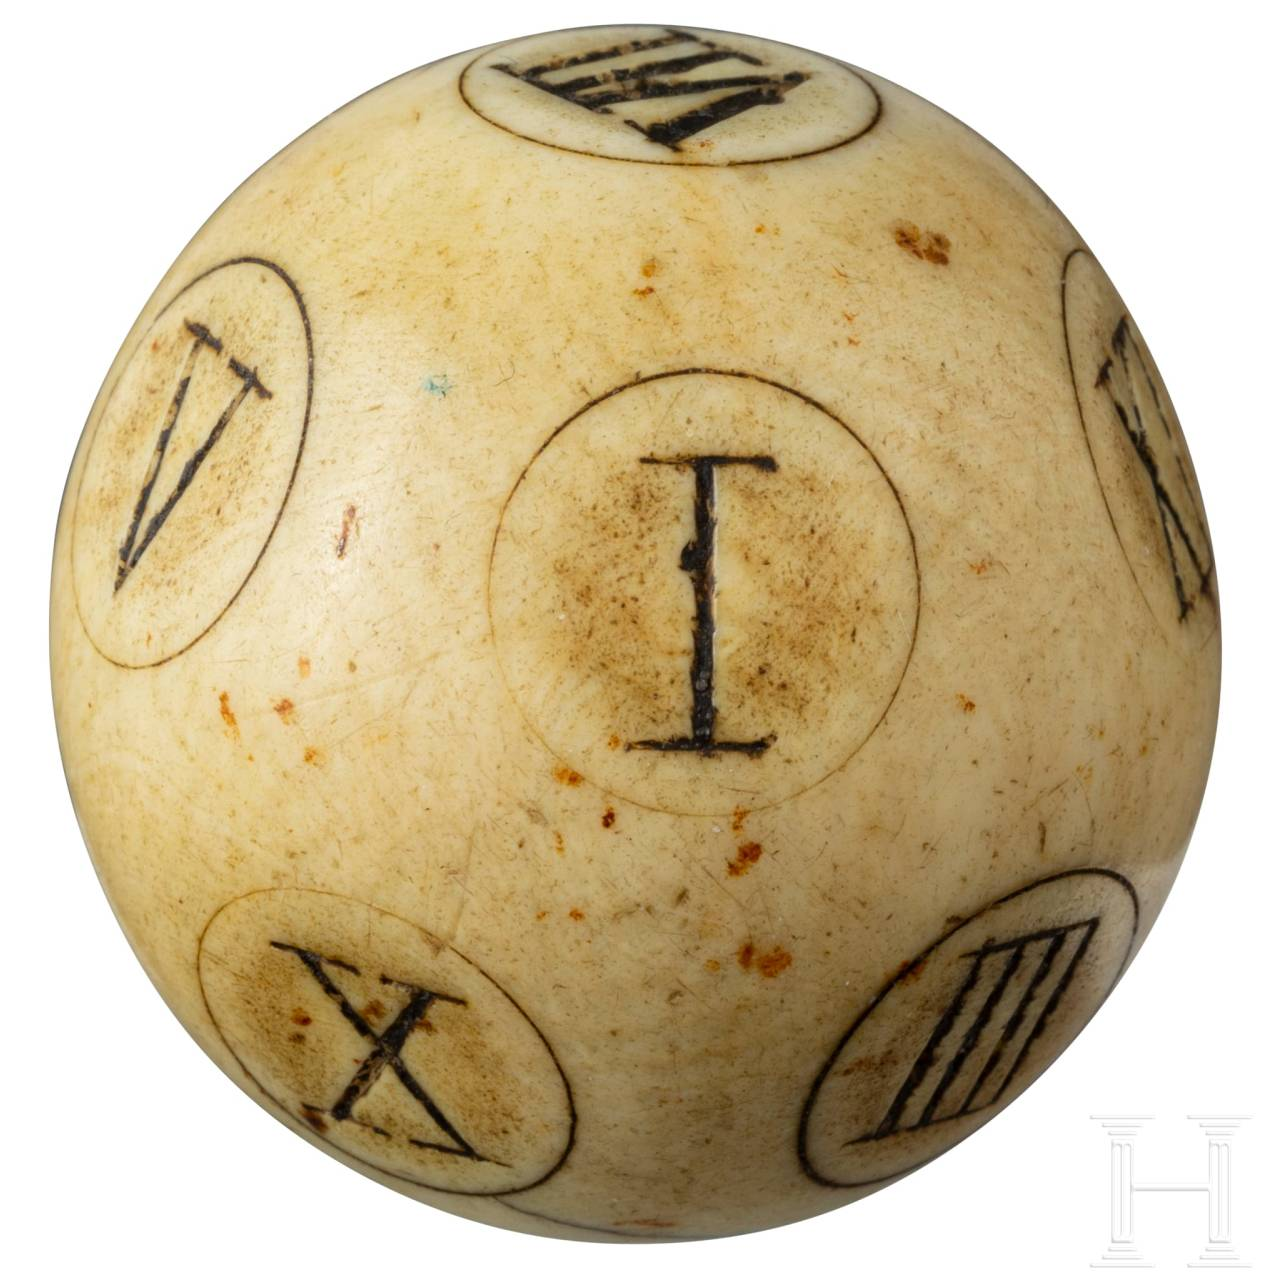 A rare English Baroque ivory teetotum puzzle ball with Roman numbers from I to XII, 18th century